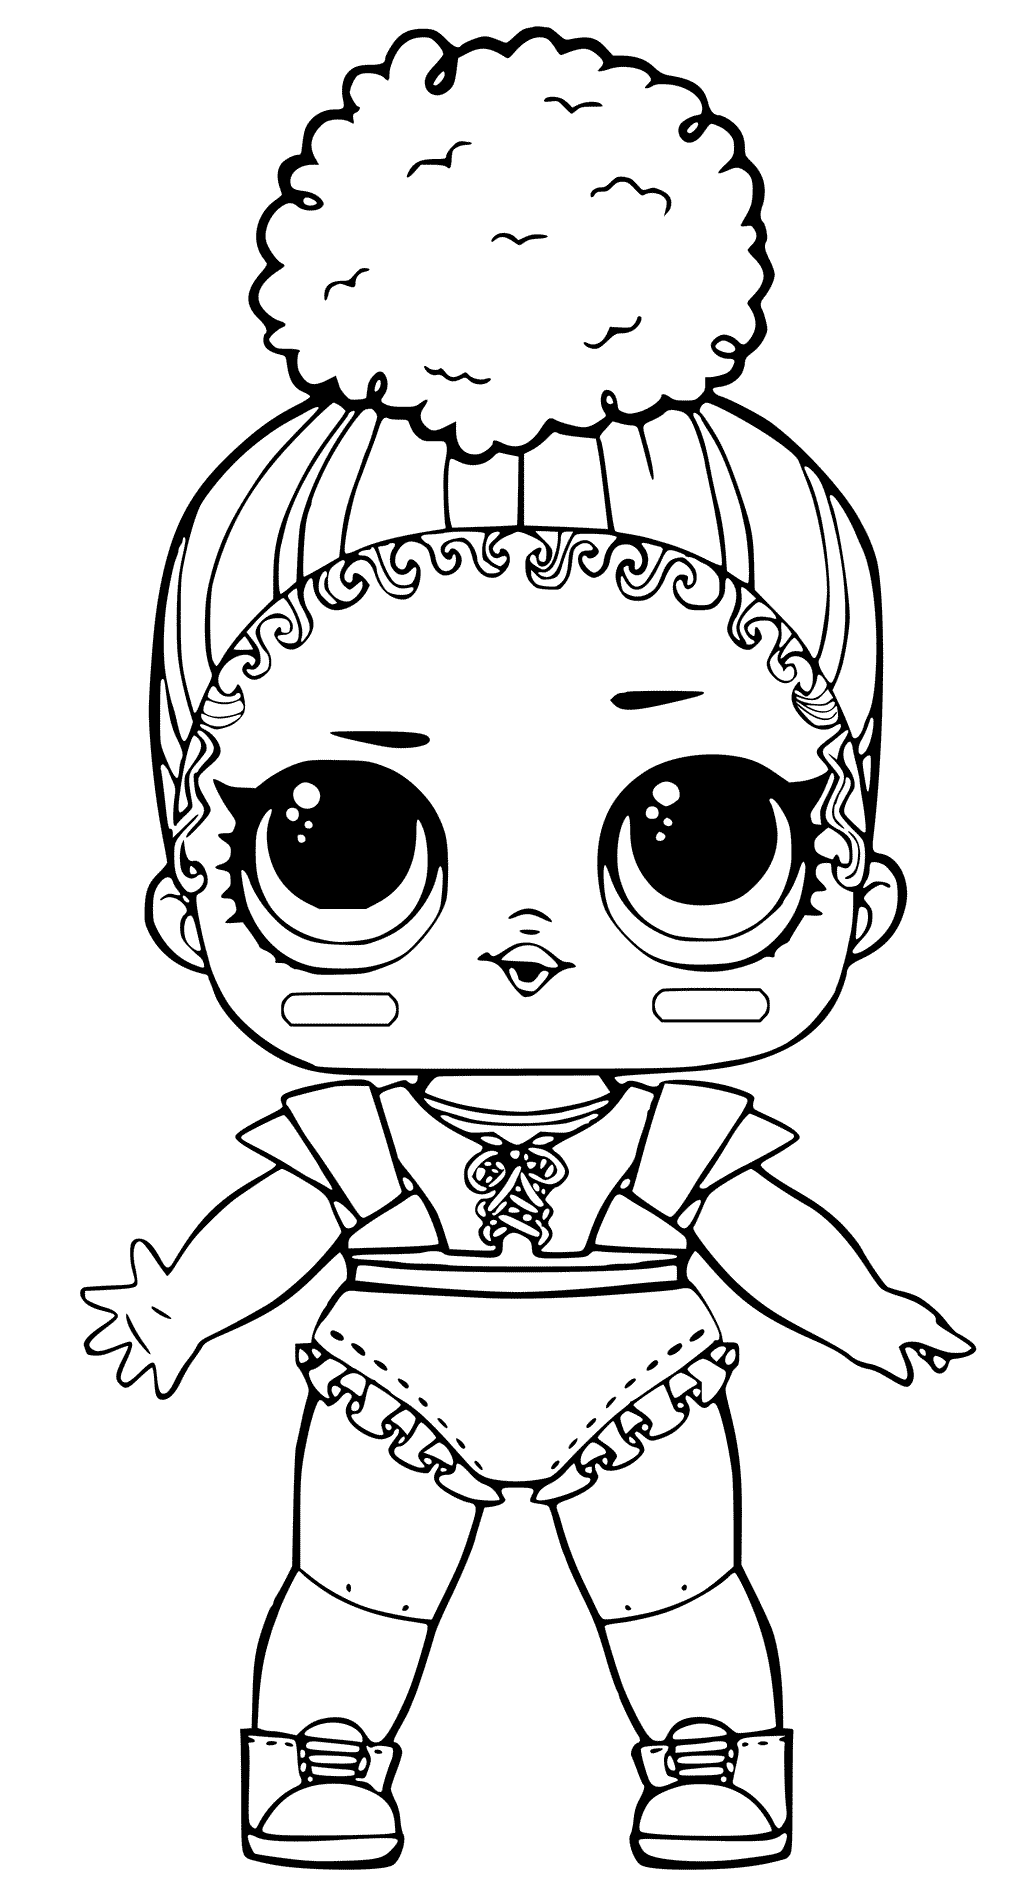 Lol Surprise Doll Coloring Pages Printable Unicorn In 2020 Unicorn Coloring Pages Cute Coloring Pages Lol Dolls